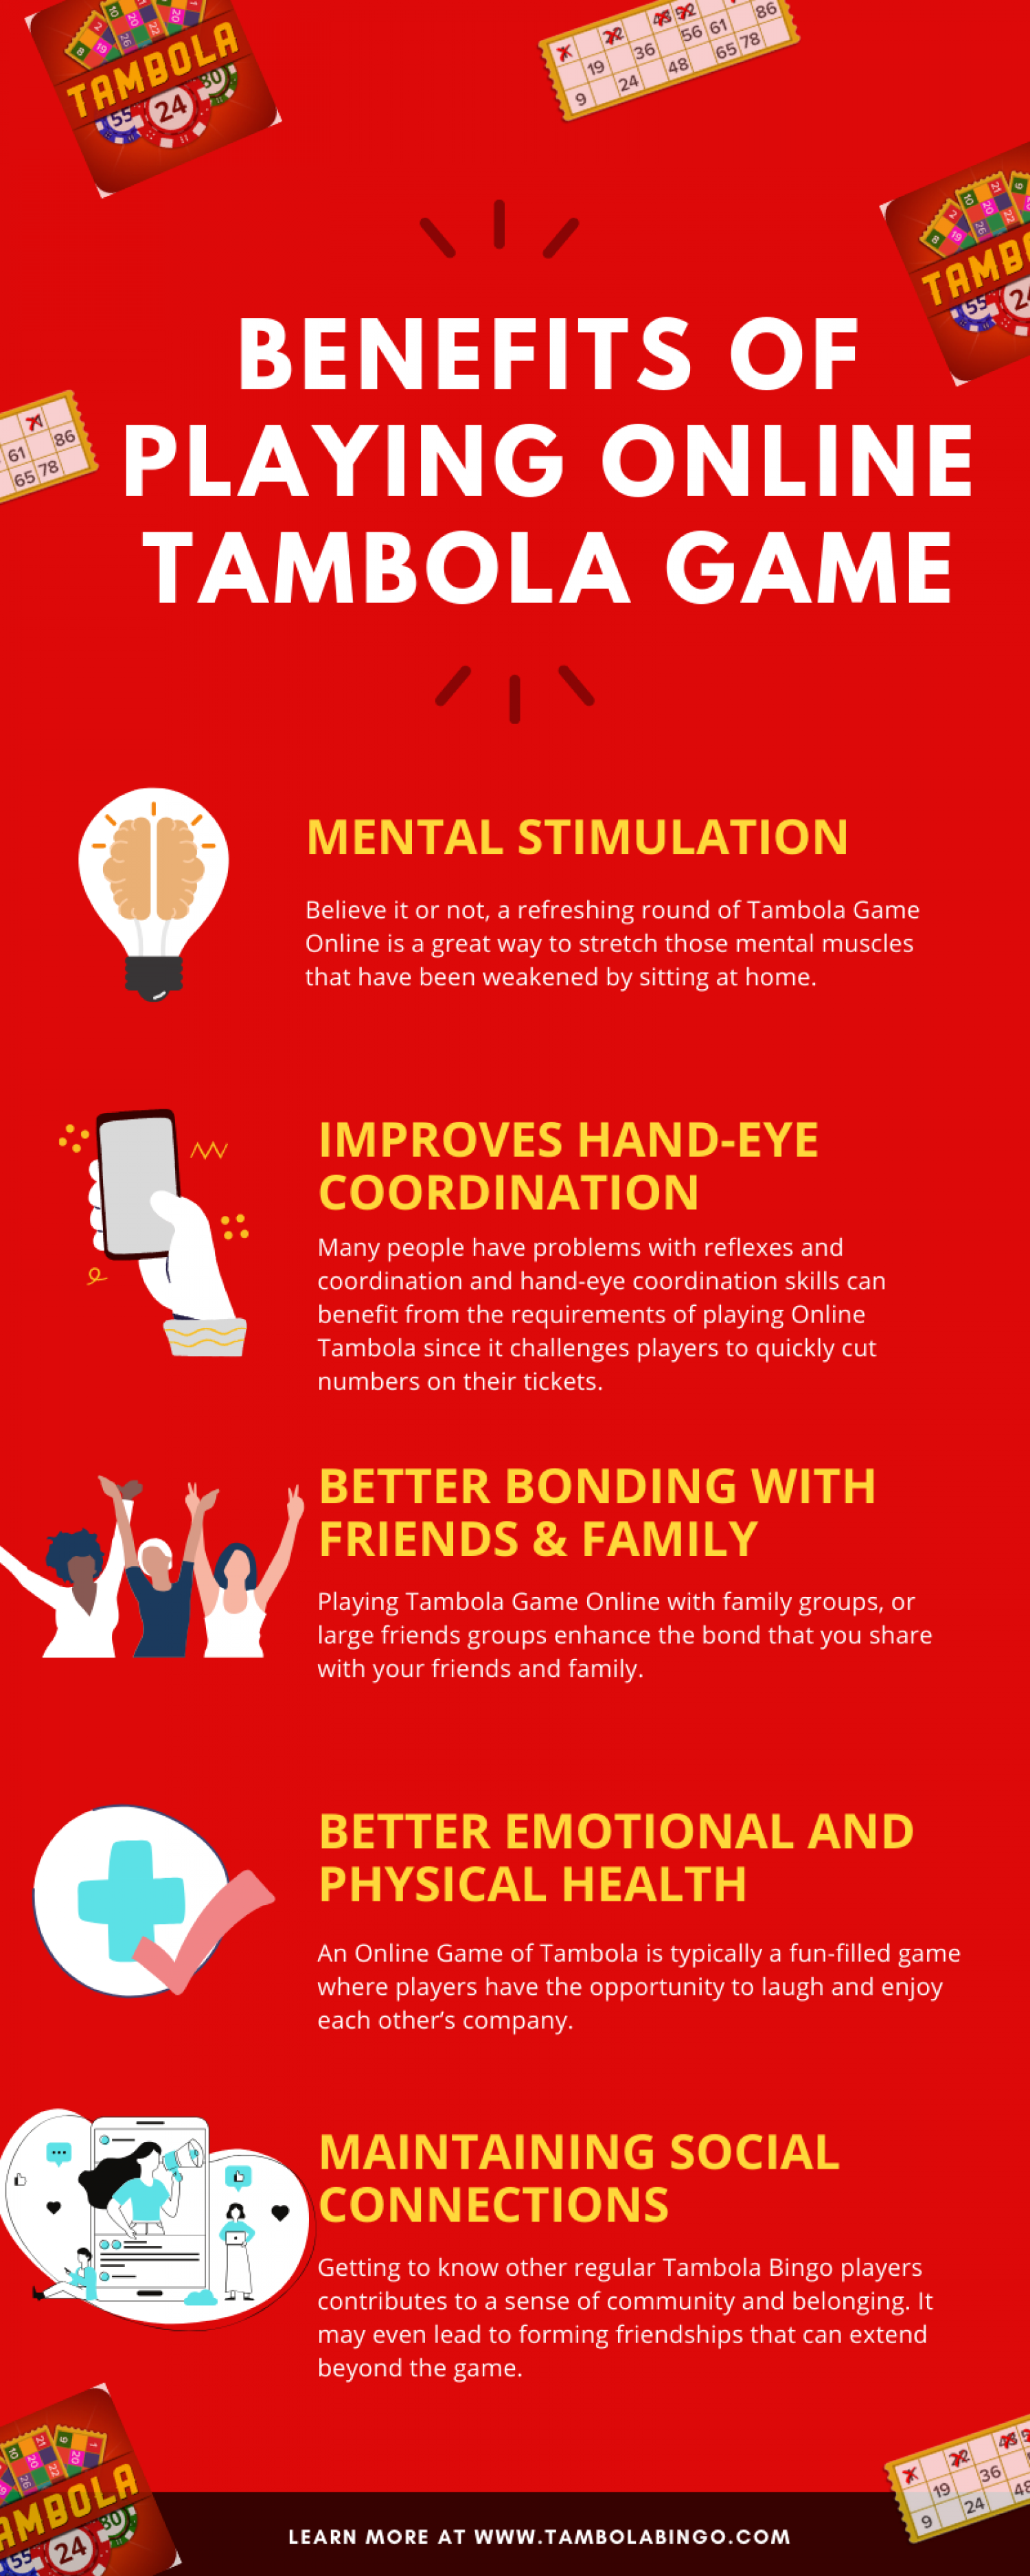 Benefits of Playing Tambola Game Online Infographic